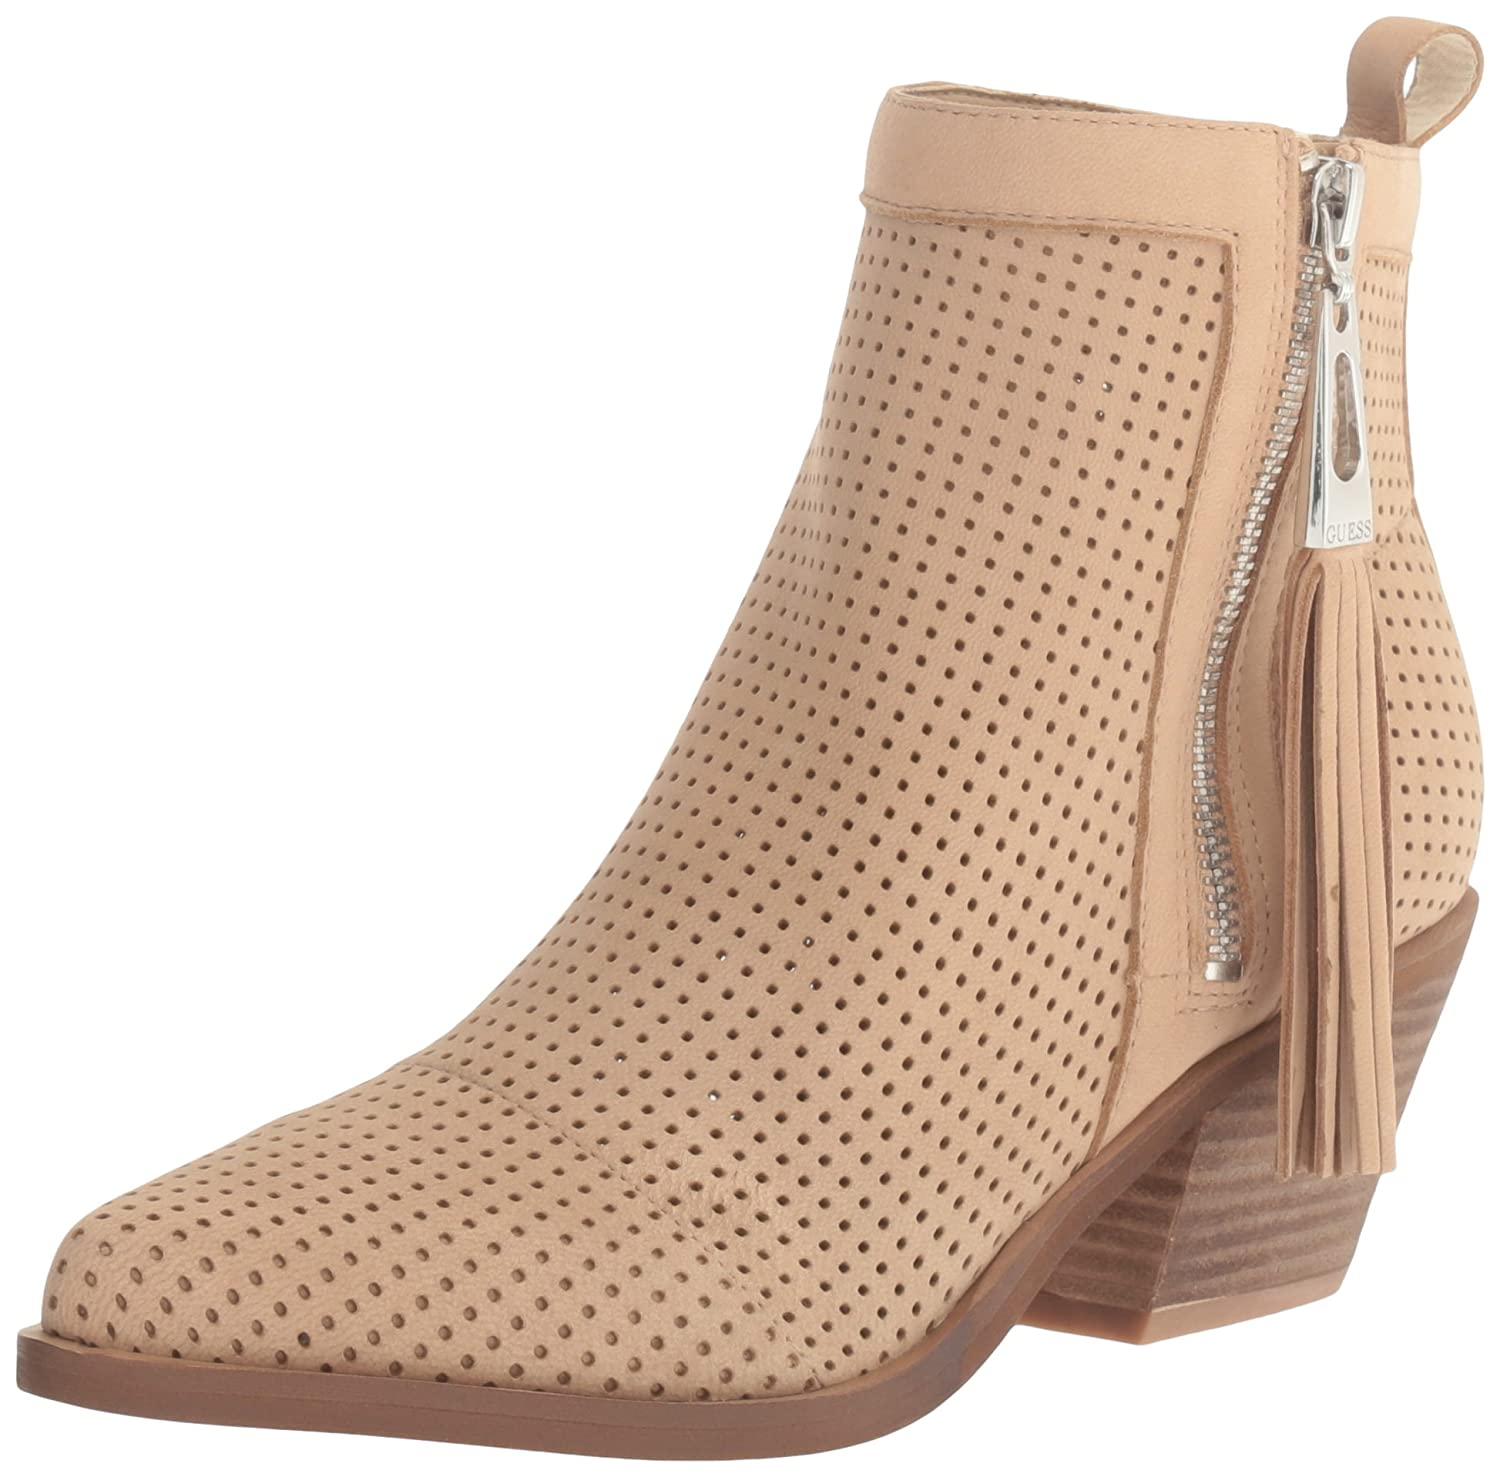 GUESS Women's Talzay Ankle Bootie Natural